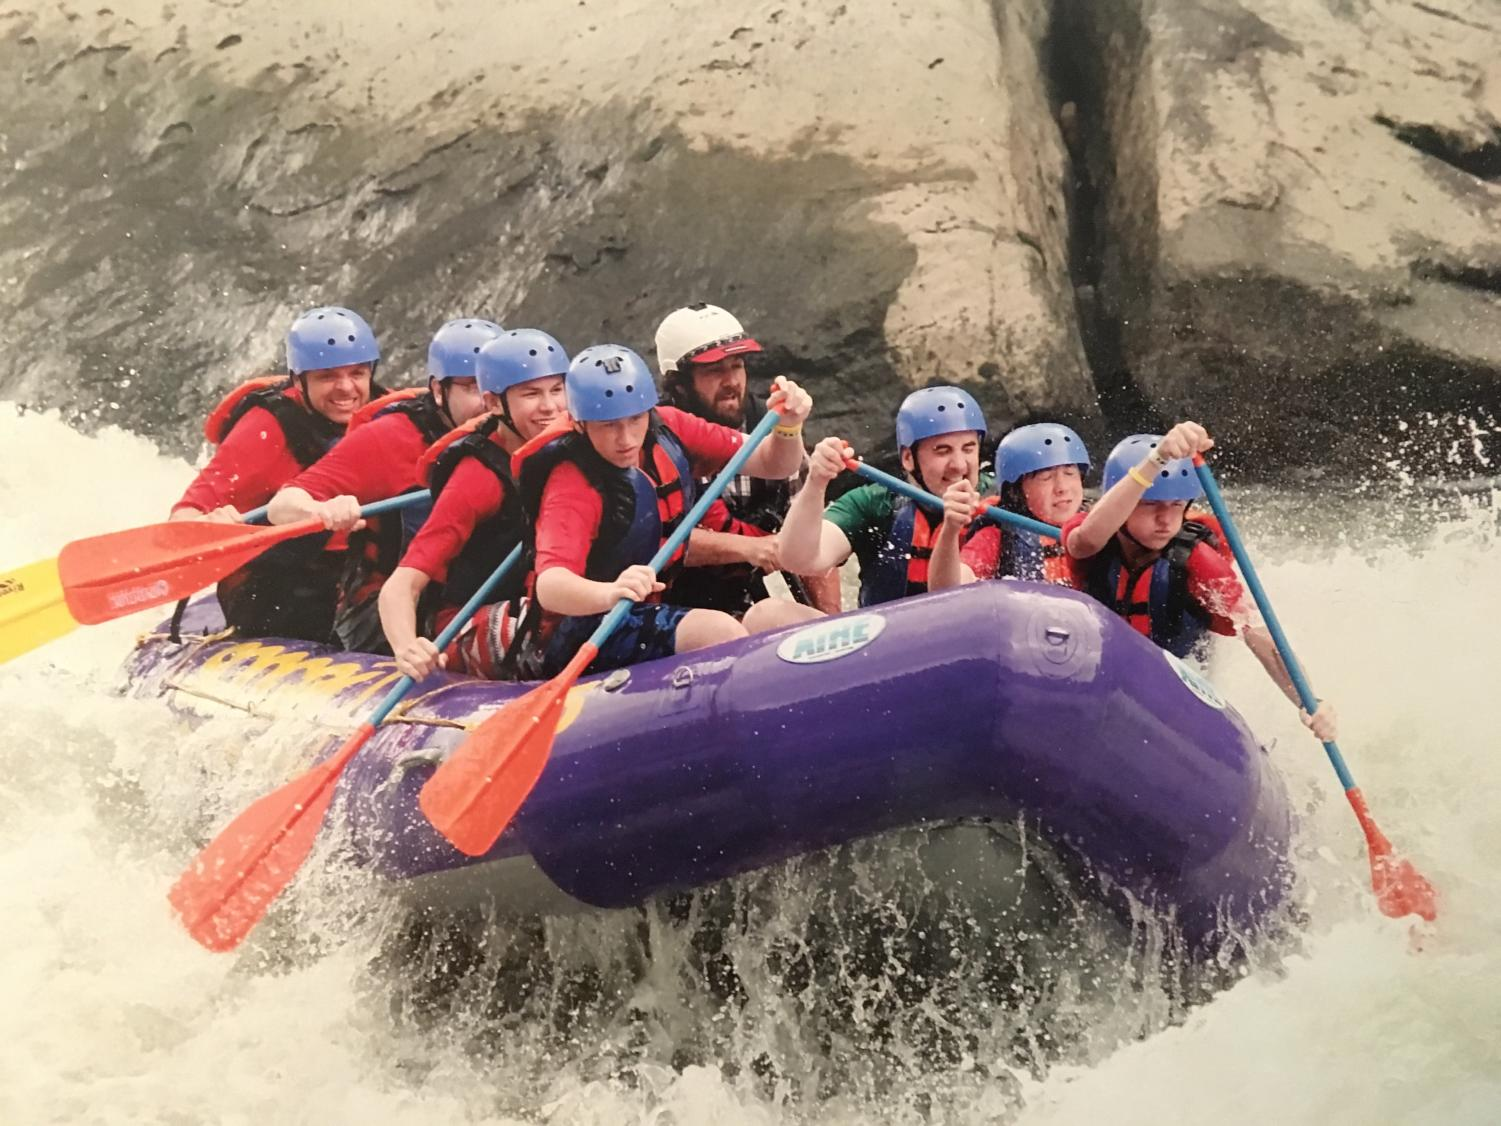 Members of Boy Scout Troop 385 engage in whitewater rafting on the New River in Virgina in 2015.